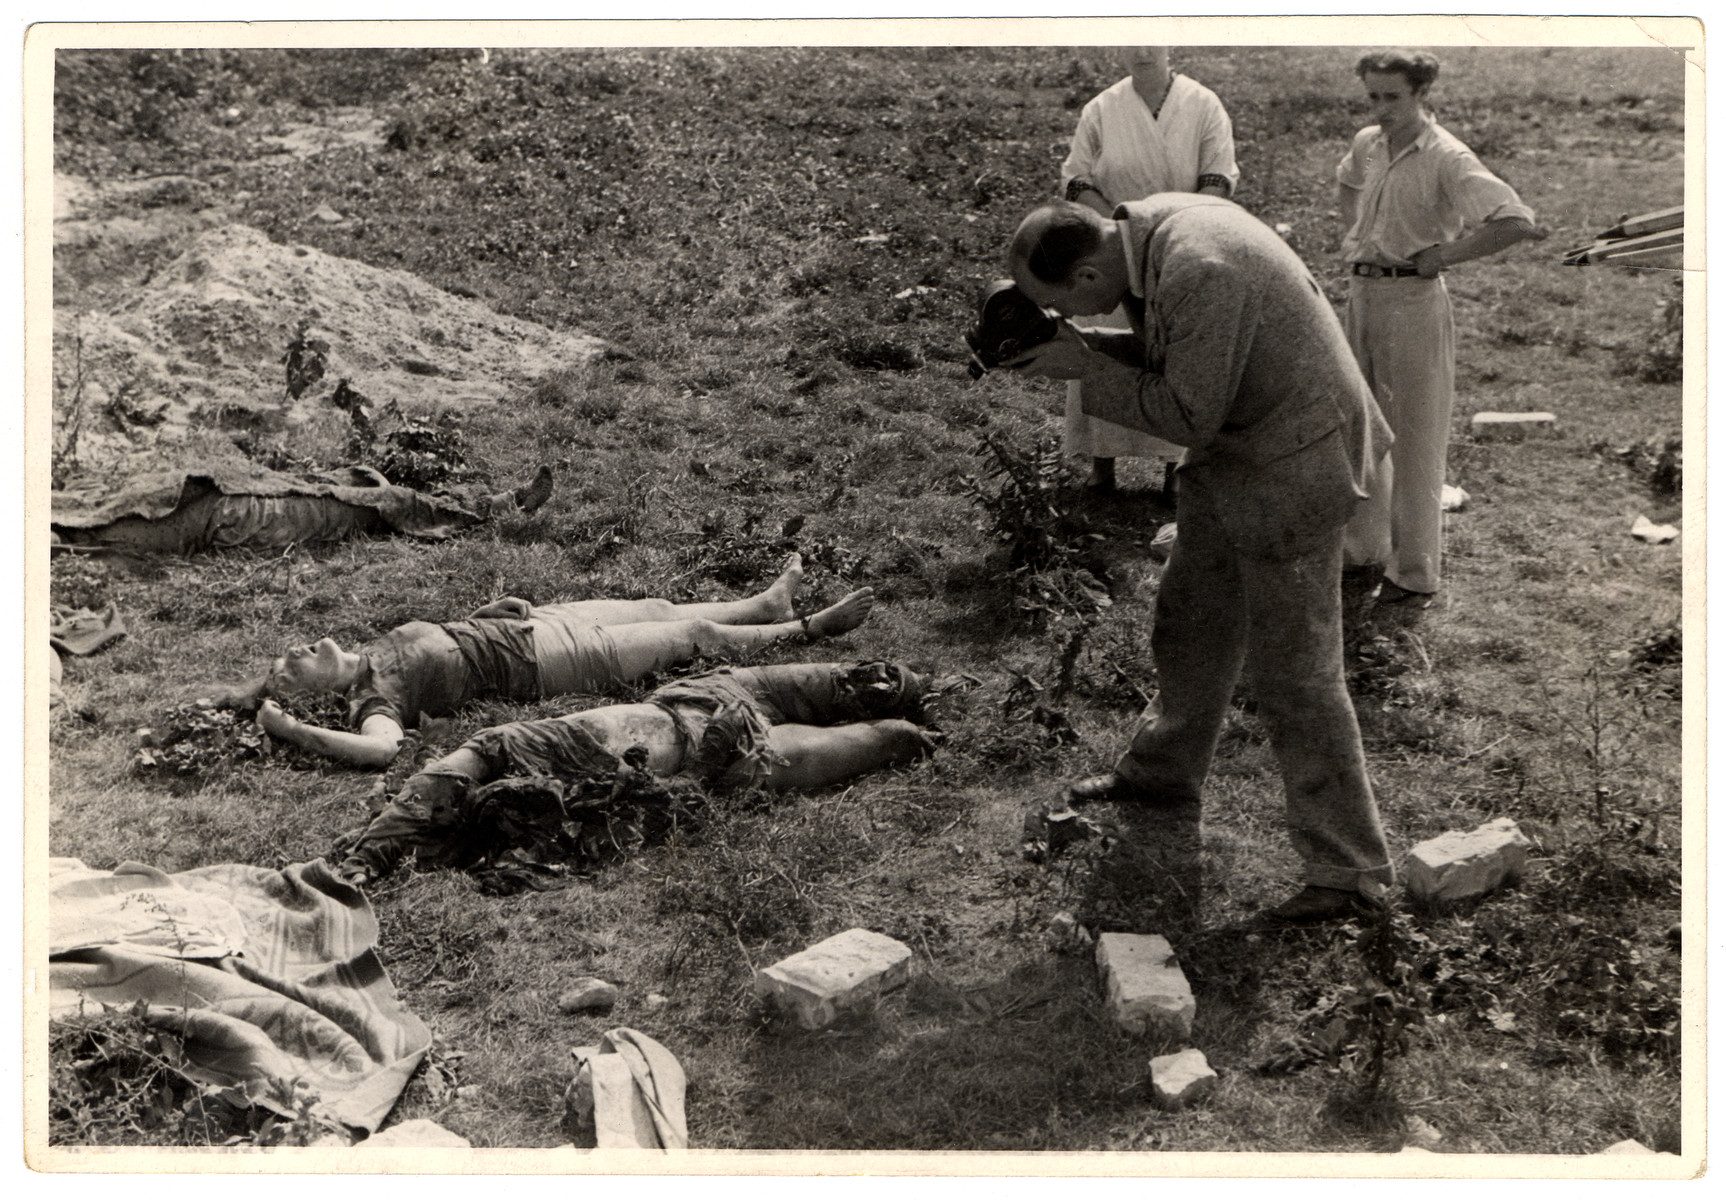 Photographer and filmaker Julien Bryan takes pictures of corpses during the siege of Warsaw.